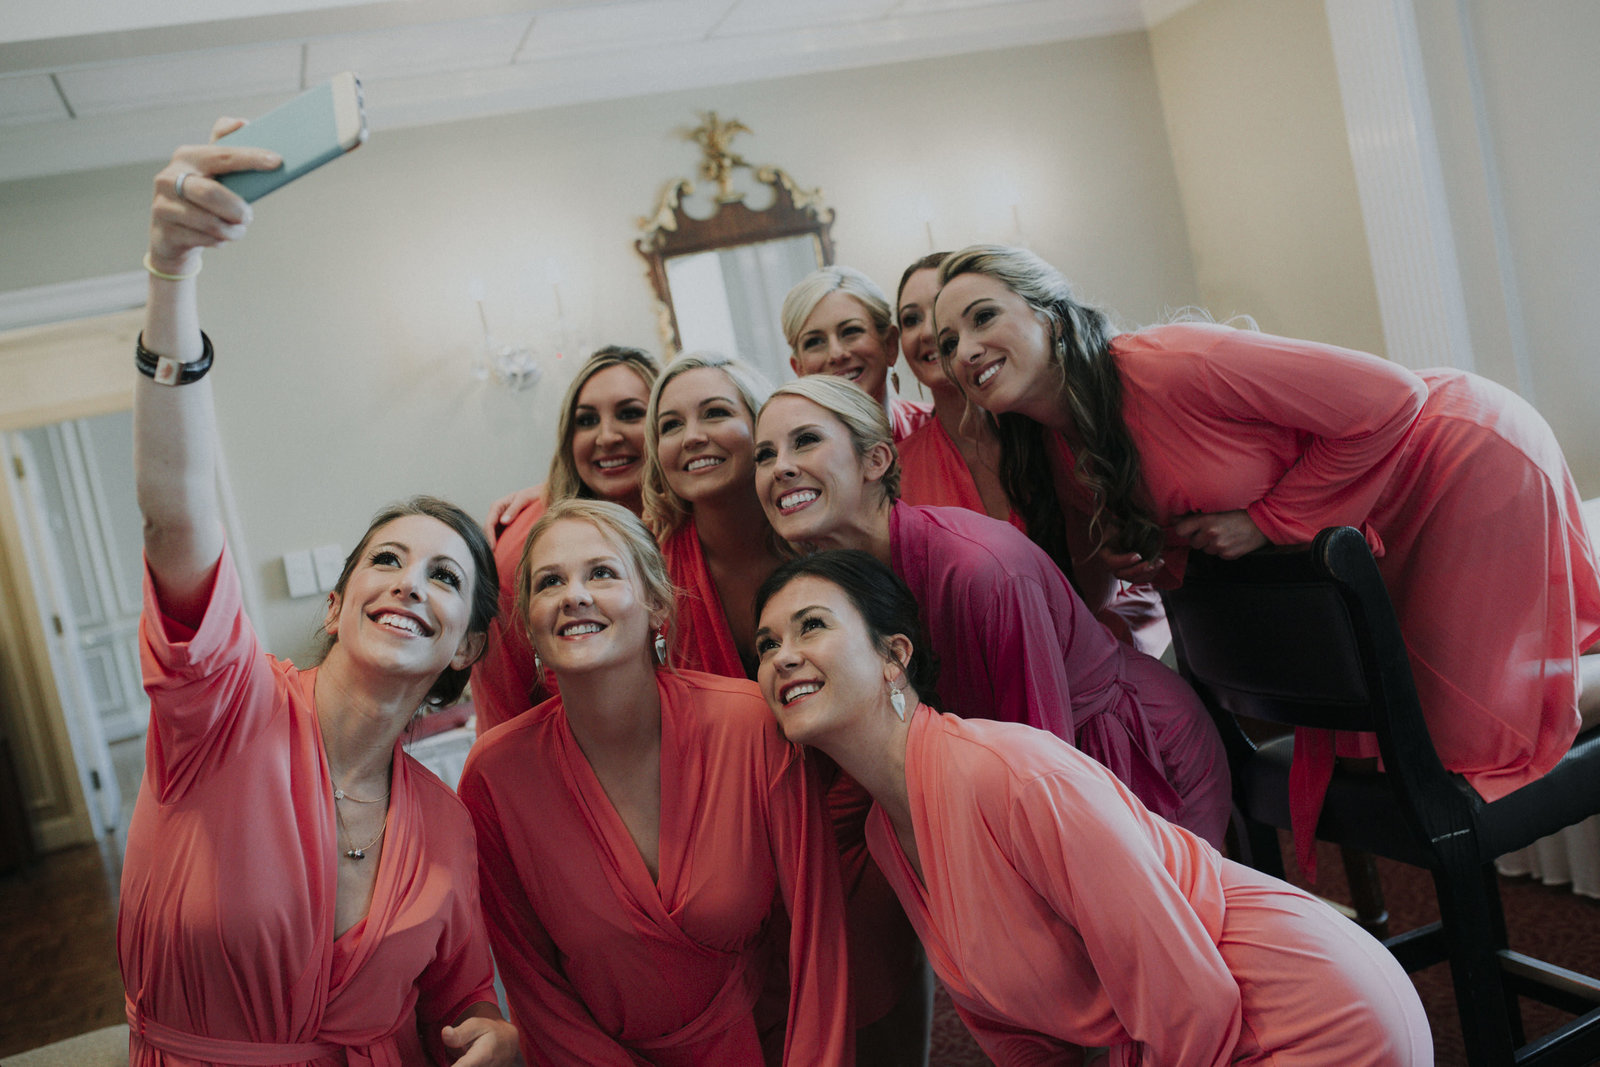 bridesmaids get ready for the wedding in pink robes